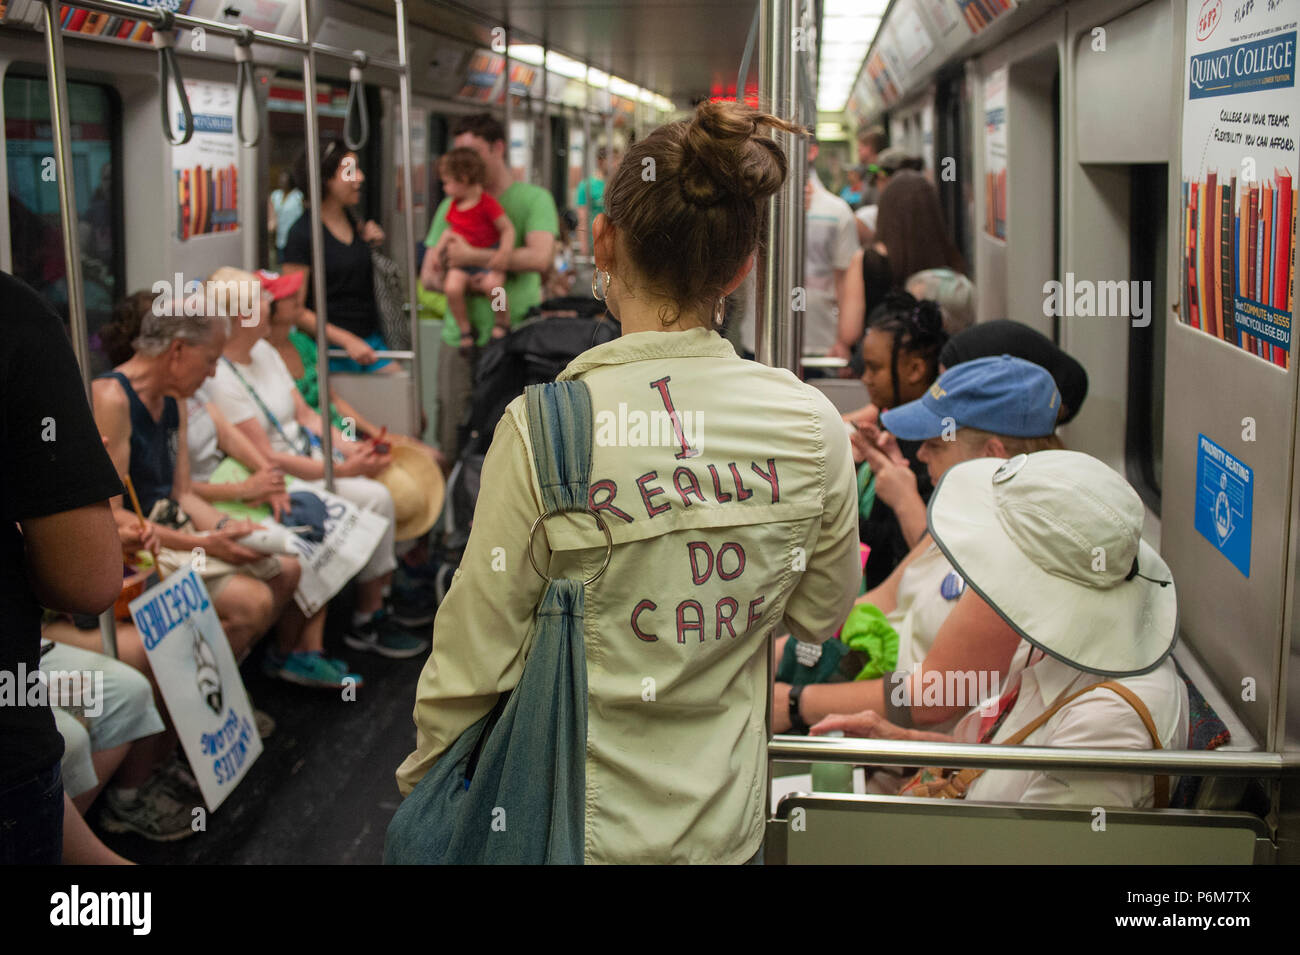 Boston, Massachusetts, USA. 30th June, 2018.  U.S. University Student wearing a coat mocking the Jacket that First Lady, Melania Trump wore before visiting a Texas detention shelter. The student and demonstrators are riding home on the Boston Metro after thousands gathered in central Boston, MA, during the Rally against Family Separation by the current United States administration. Rallies against U.S. President Donald Trump's policy of the detention immigrants and immigrant families separated by ICE took place in more than 750 US cities on June 30th.  Credit: Chuck Nacke/Alamy Live News Stock Photo